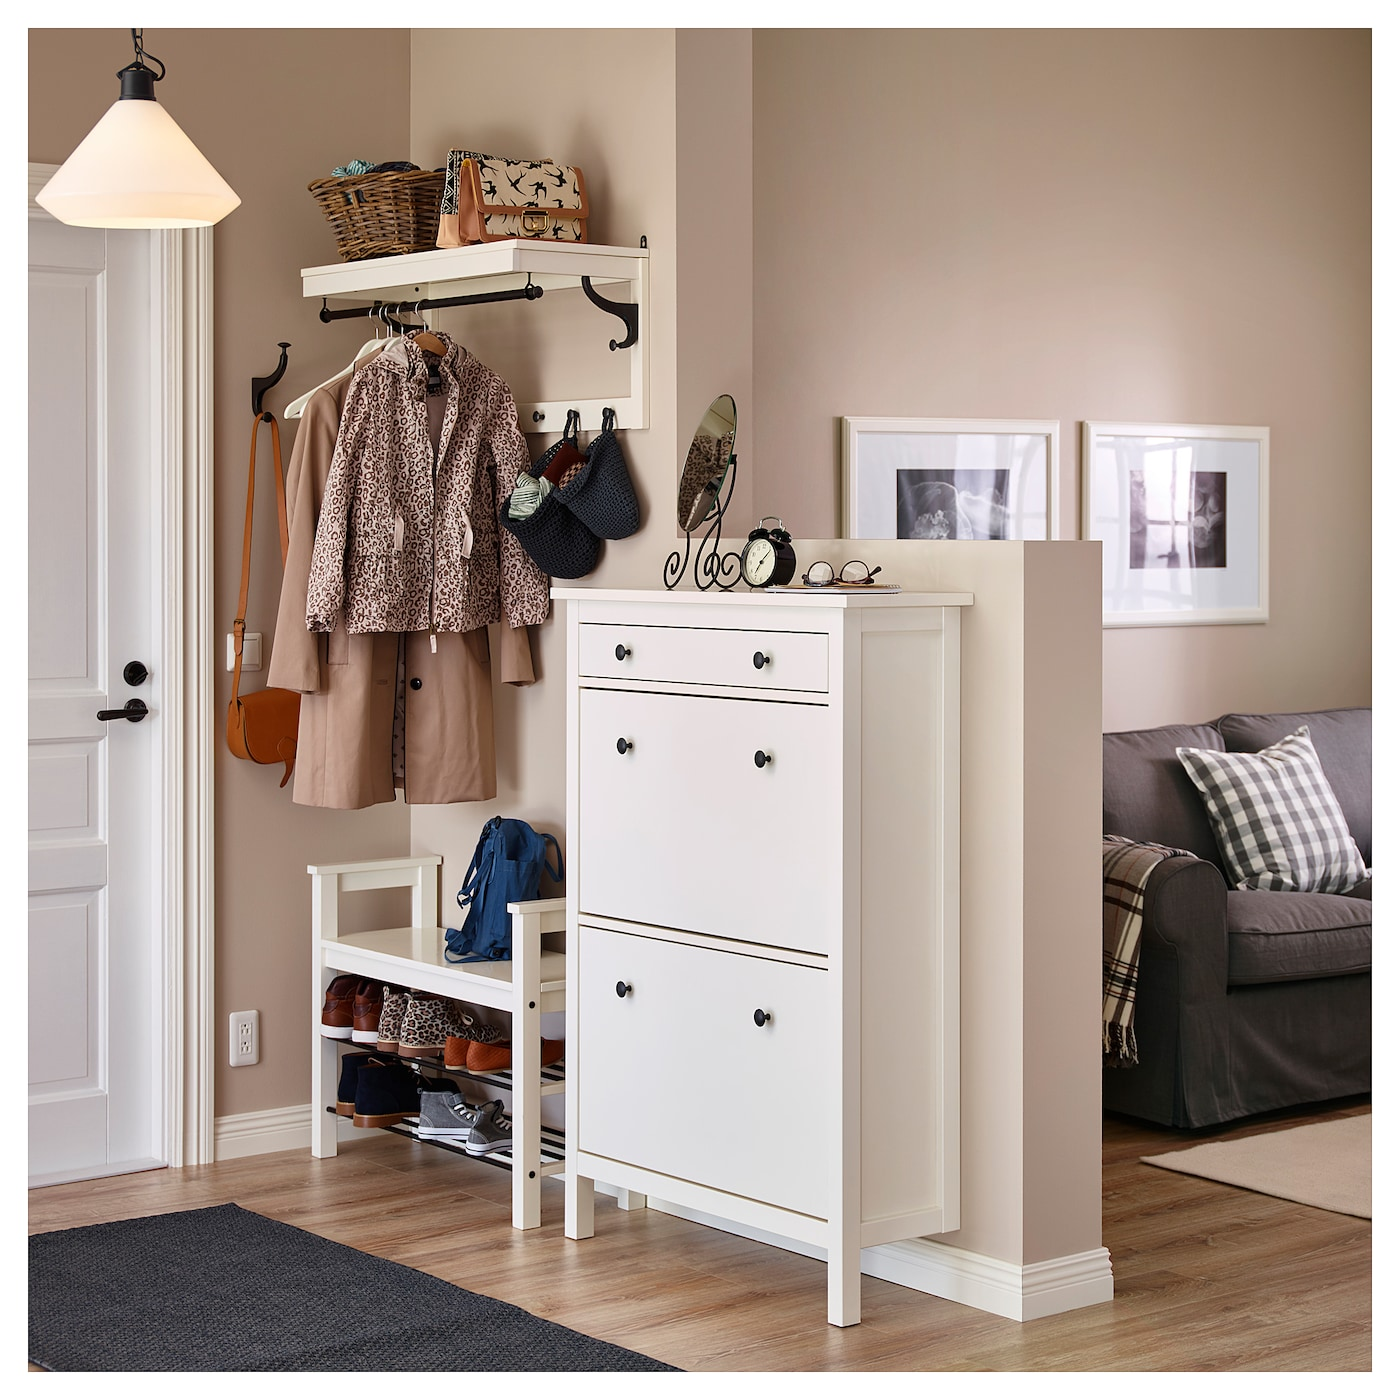 hemnes armoire chaussures 2 casiers blanc 89x127 cm ikea. Black Bedroom Furniture Sets. Home Design Ideas